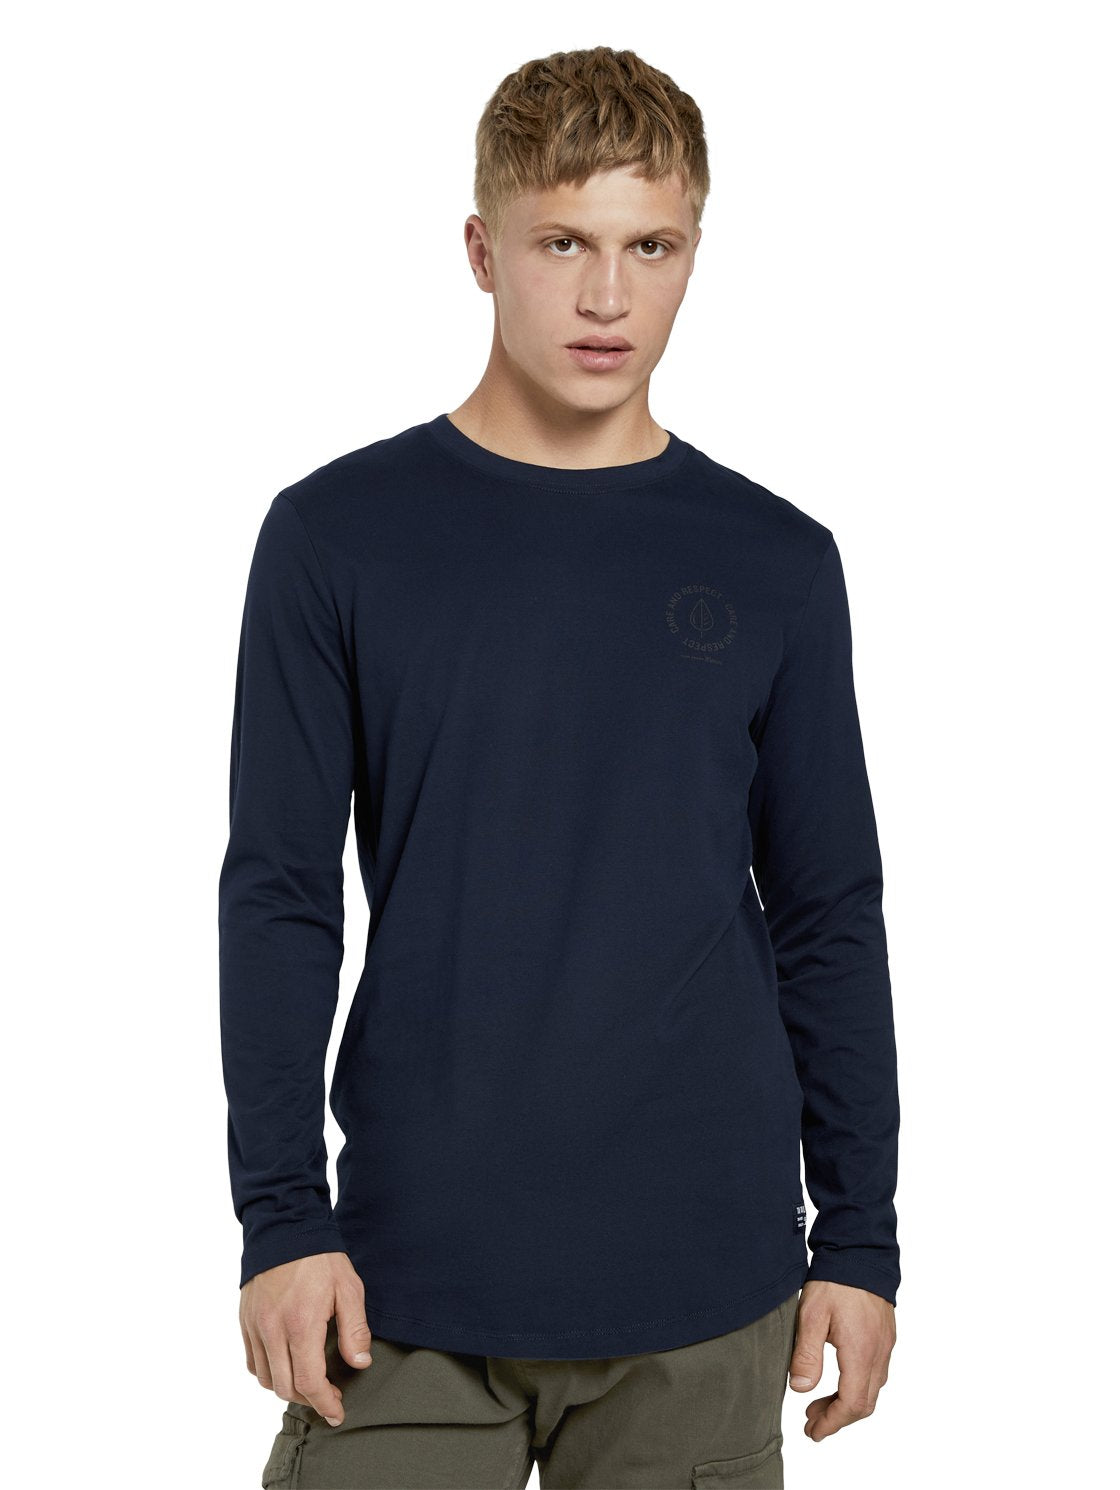 Tom Tailor 1021900 t-shirt navy